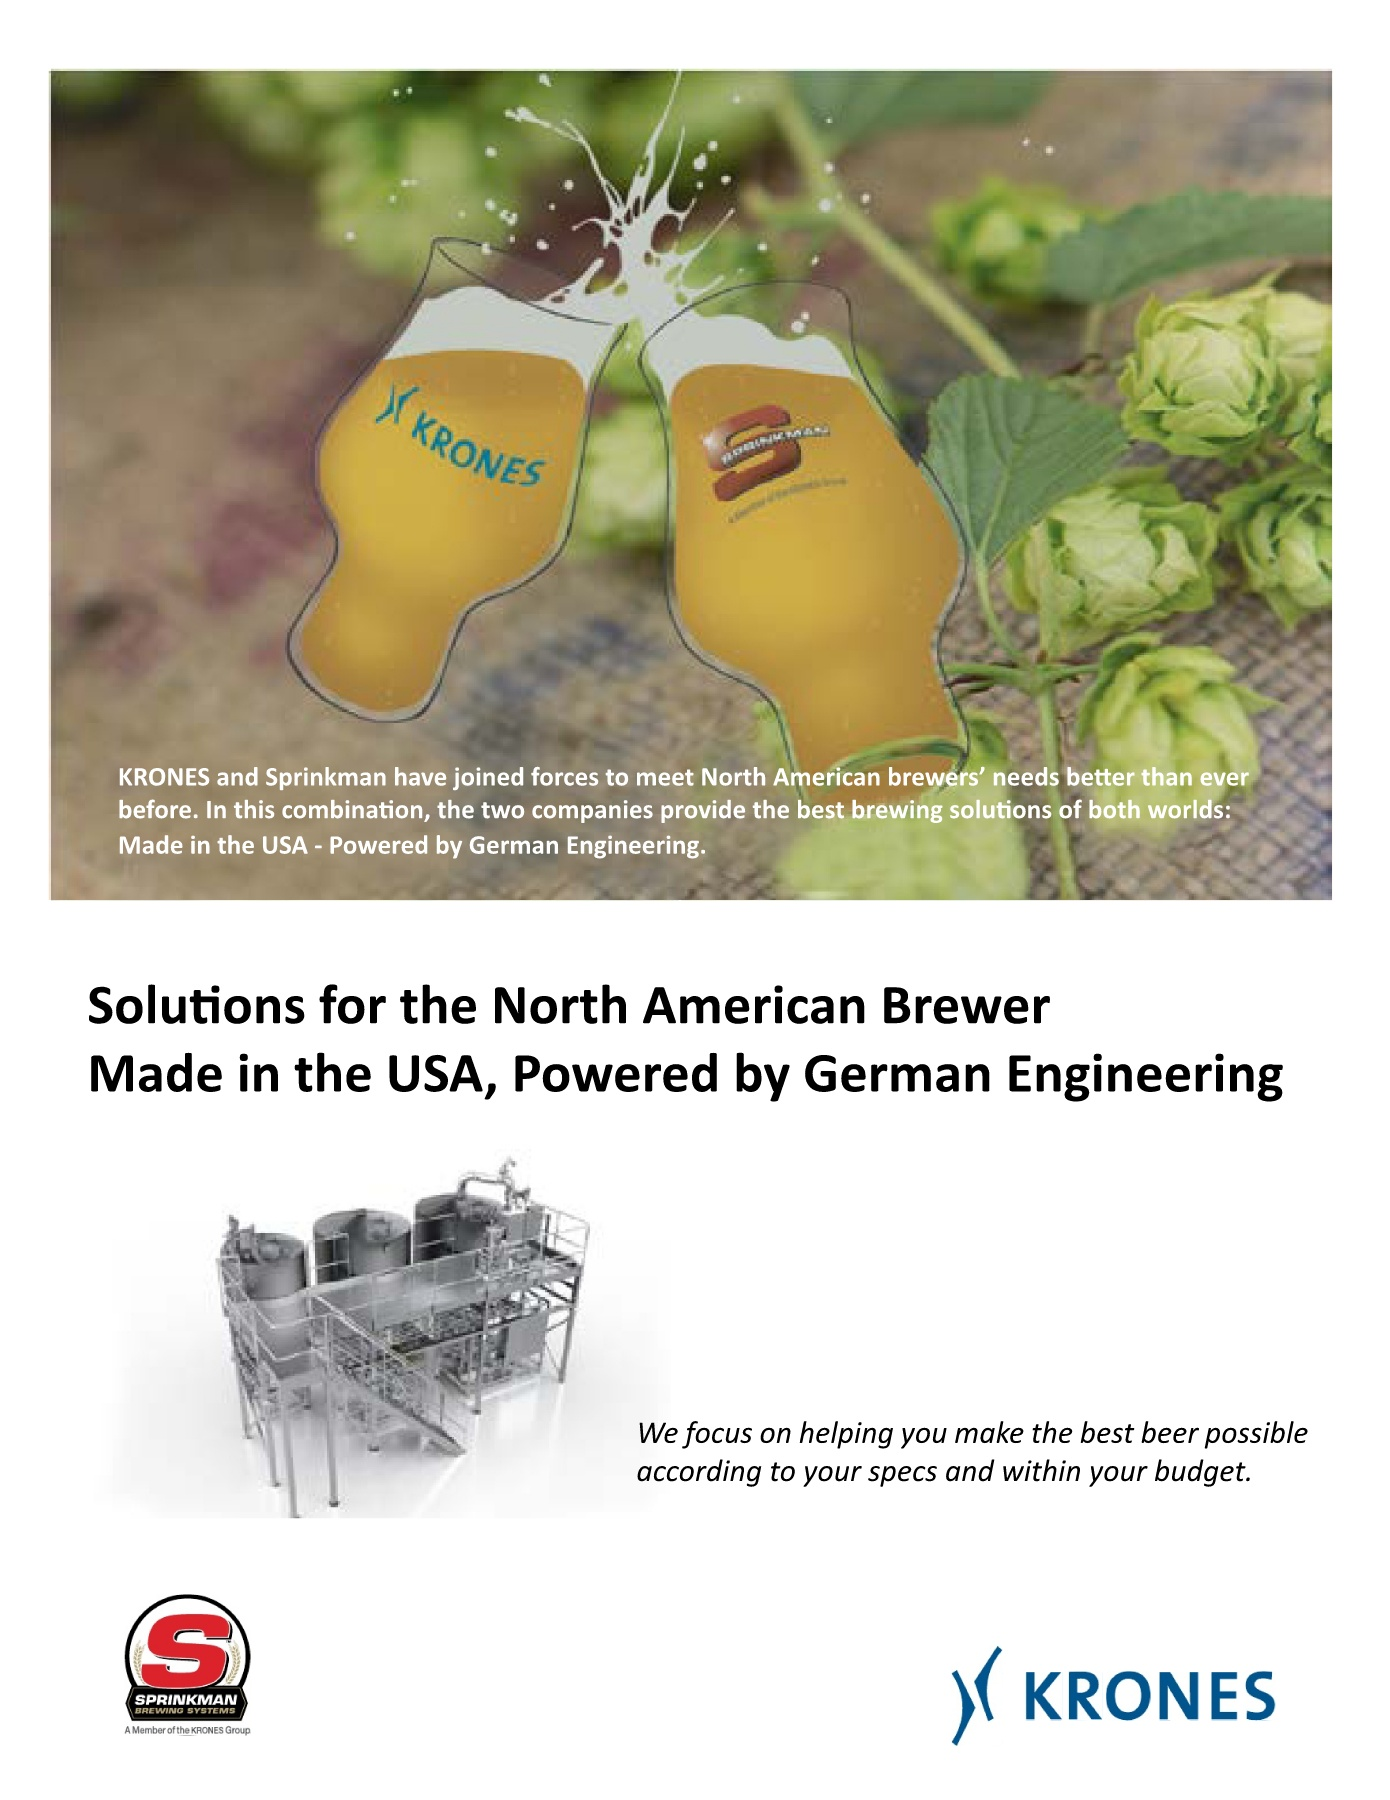 Made in the USA - Powered By German Engineering